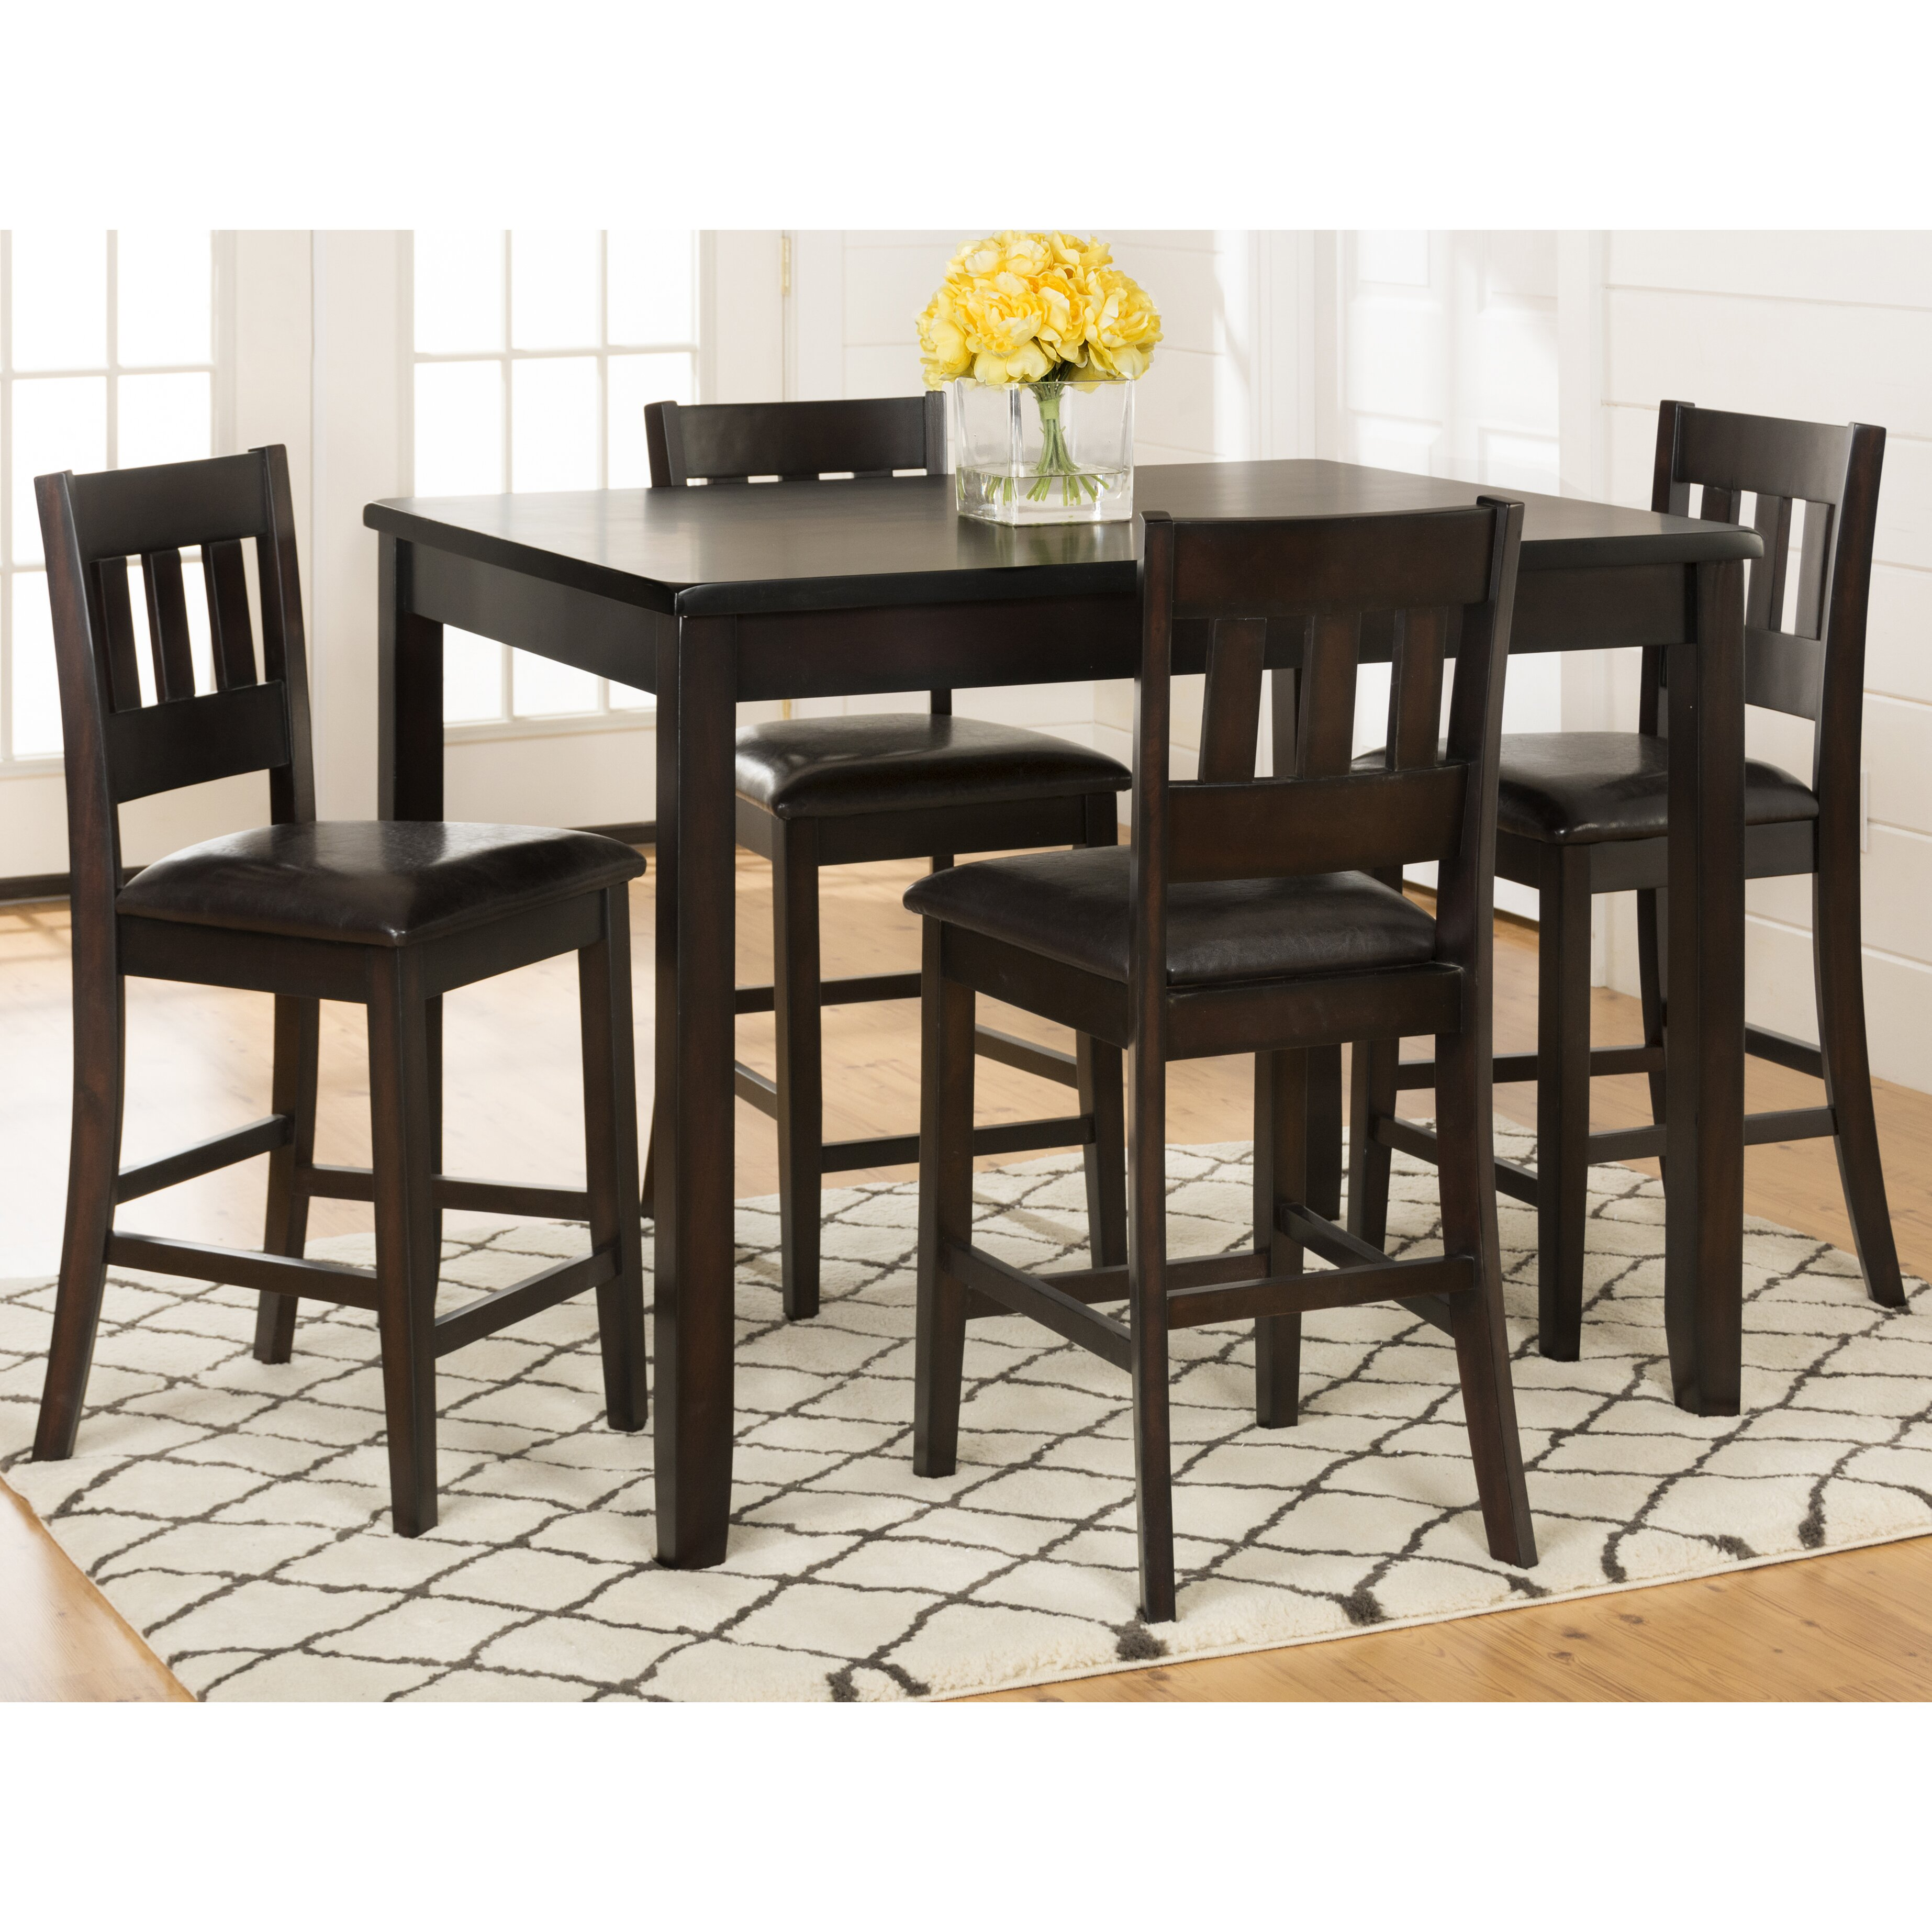 dark rustic prairie counter height table and four stools